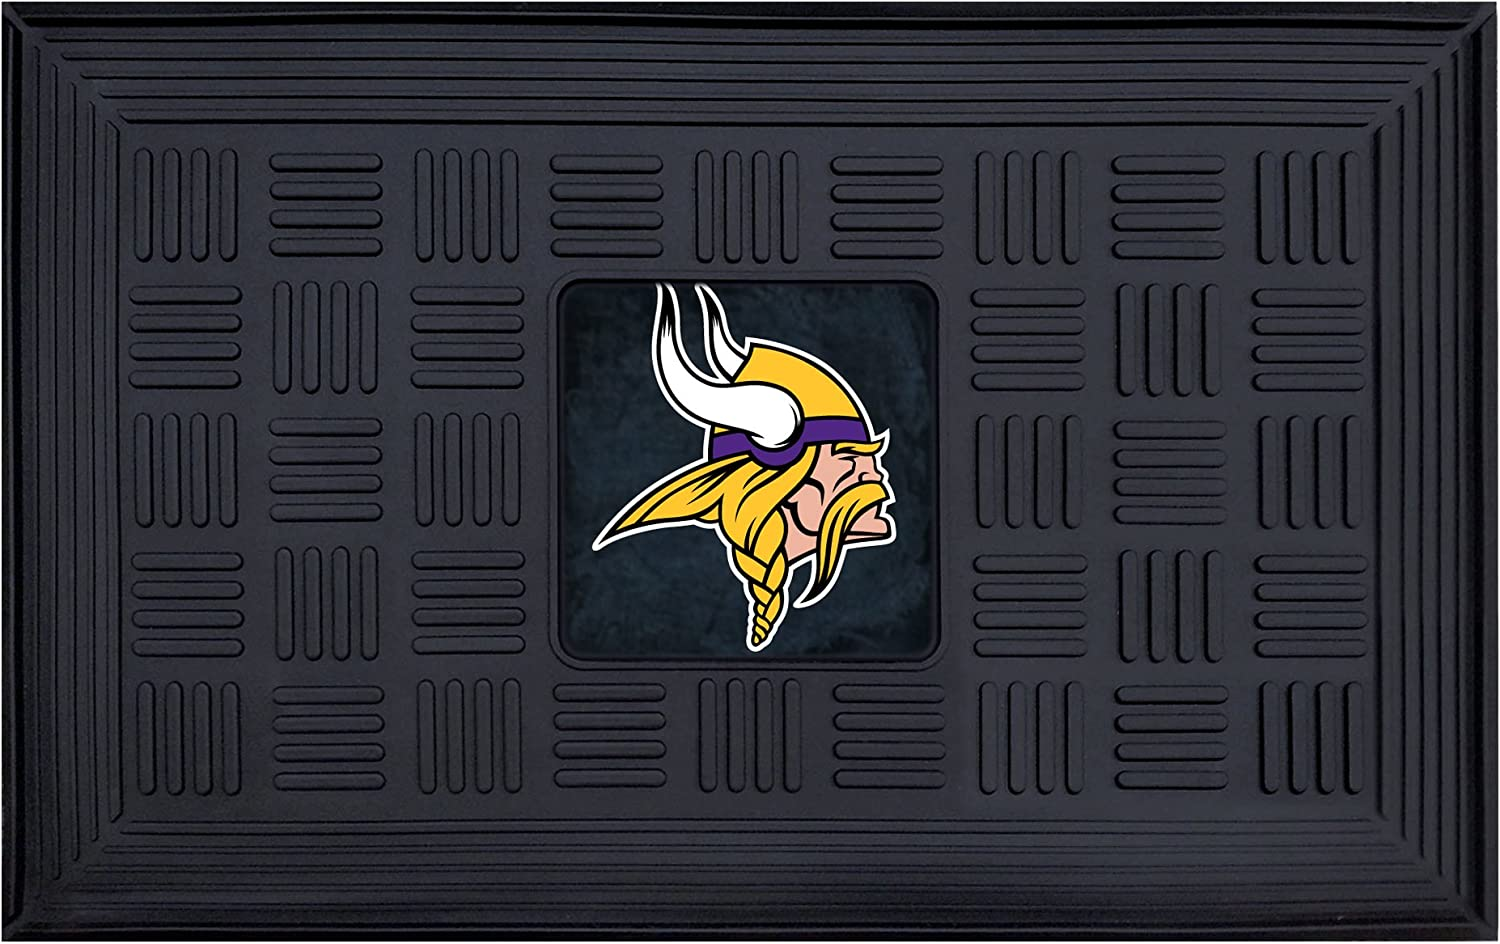 FANMATS 19950 Team Color 18 x 30 Crumb Rubber Minnesota Vikings Door Mat